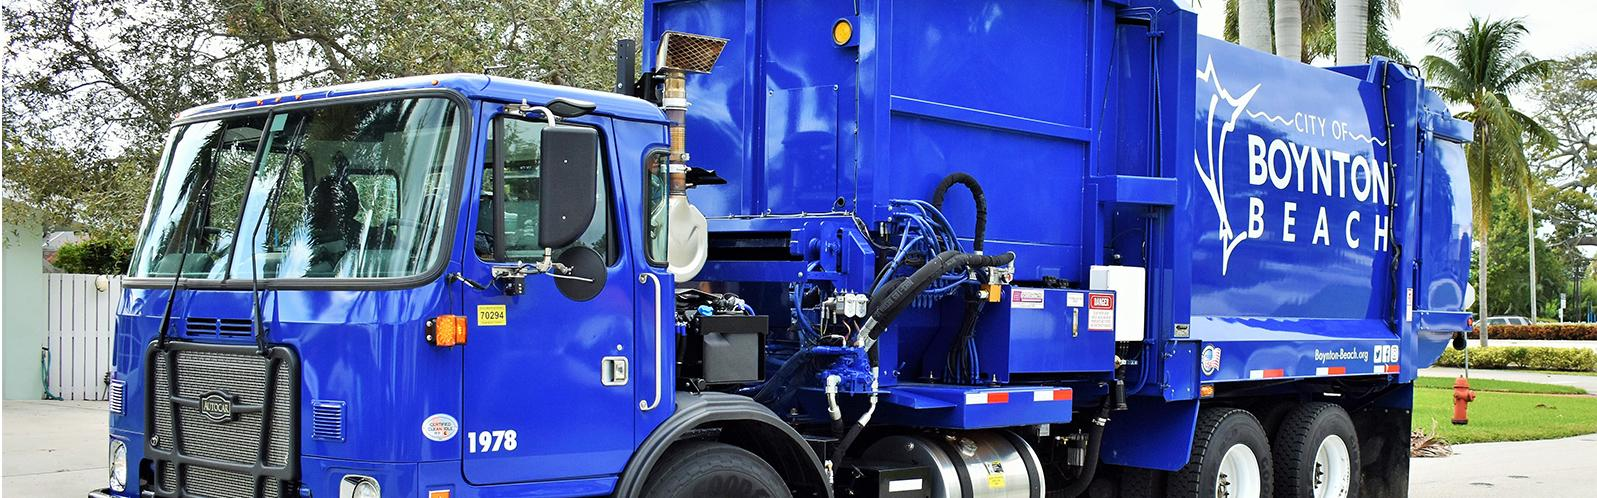 city of boynton beach garbage truck